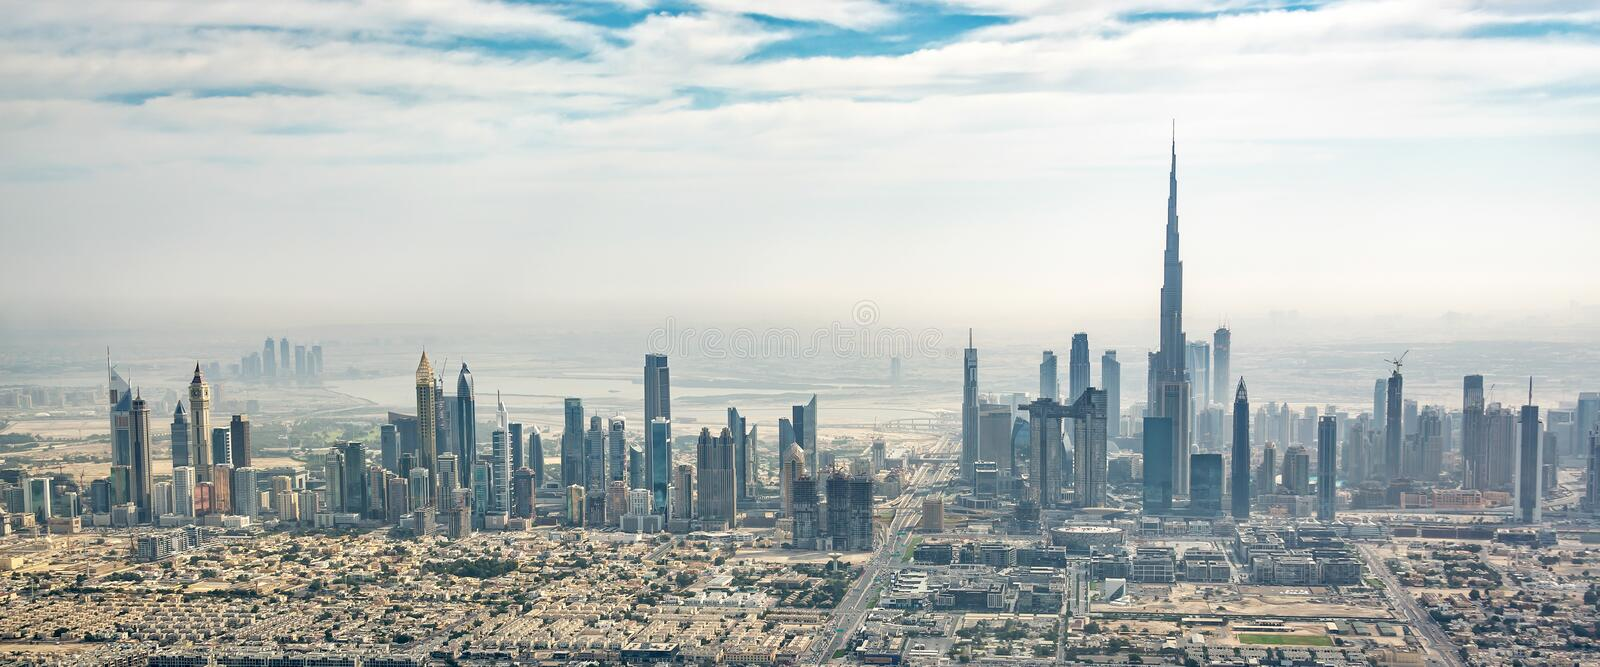 Panoramic aerial view of Dubai skyline, UAE stock images